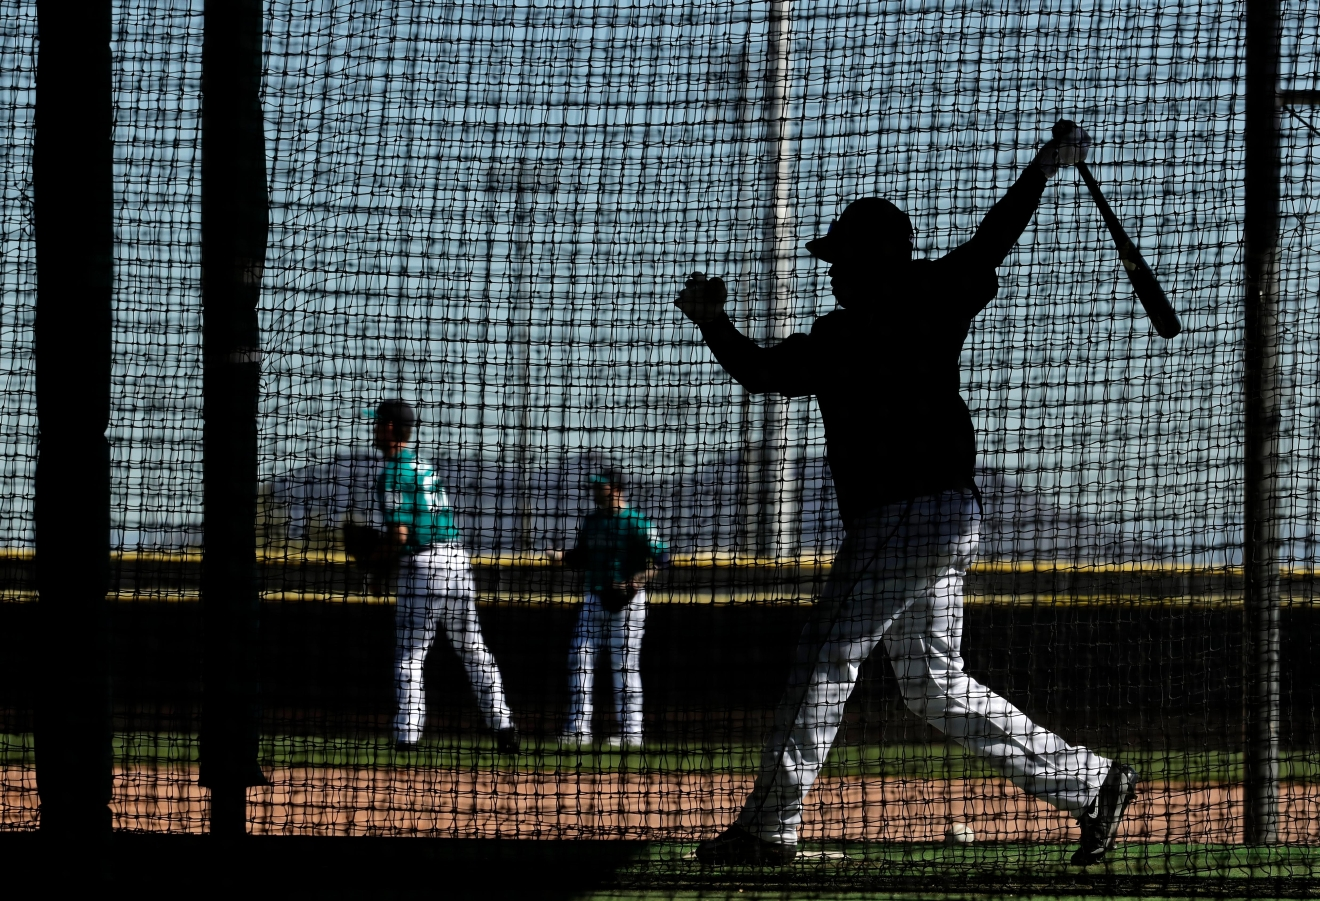 Seattle Mariners' Guillermo Heredia practices in a batting cage during spring training baseball practice, Tuesday, Feb. 21, 2017, in Peoria, Ariz. (AP Photo/Charlie Riedel)